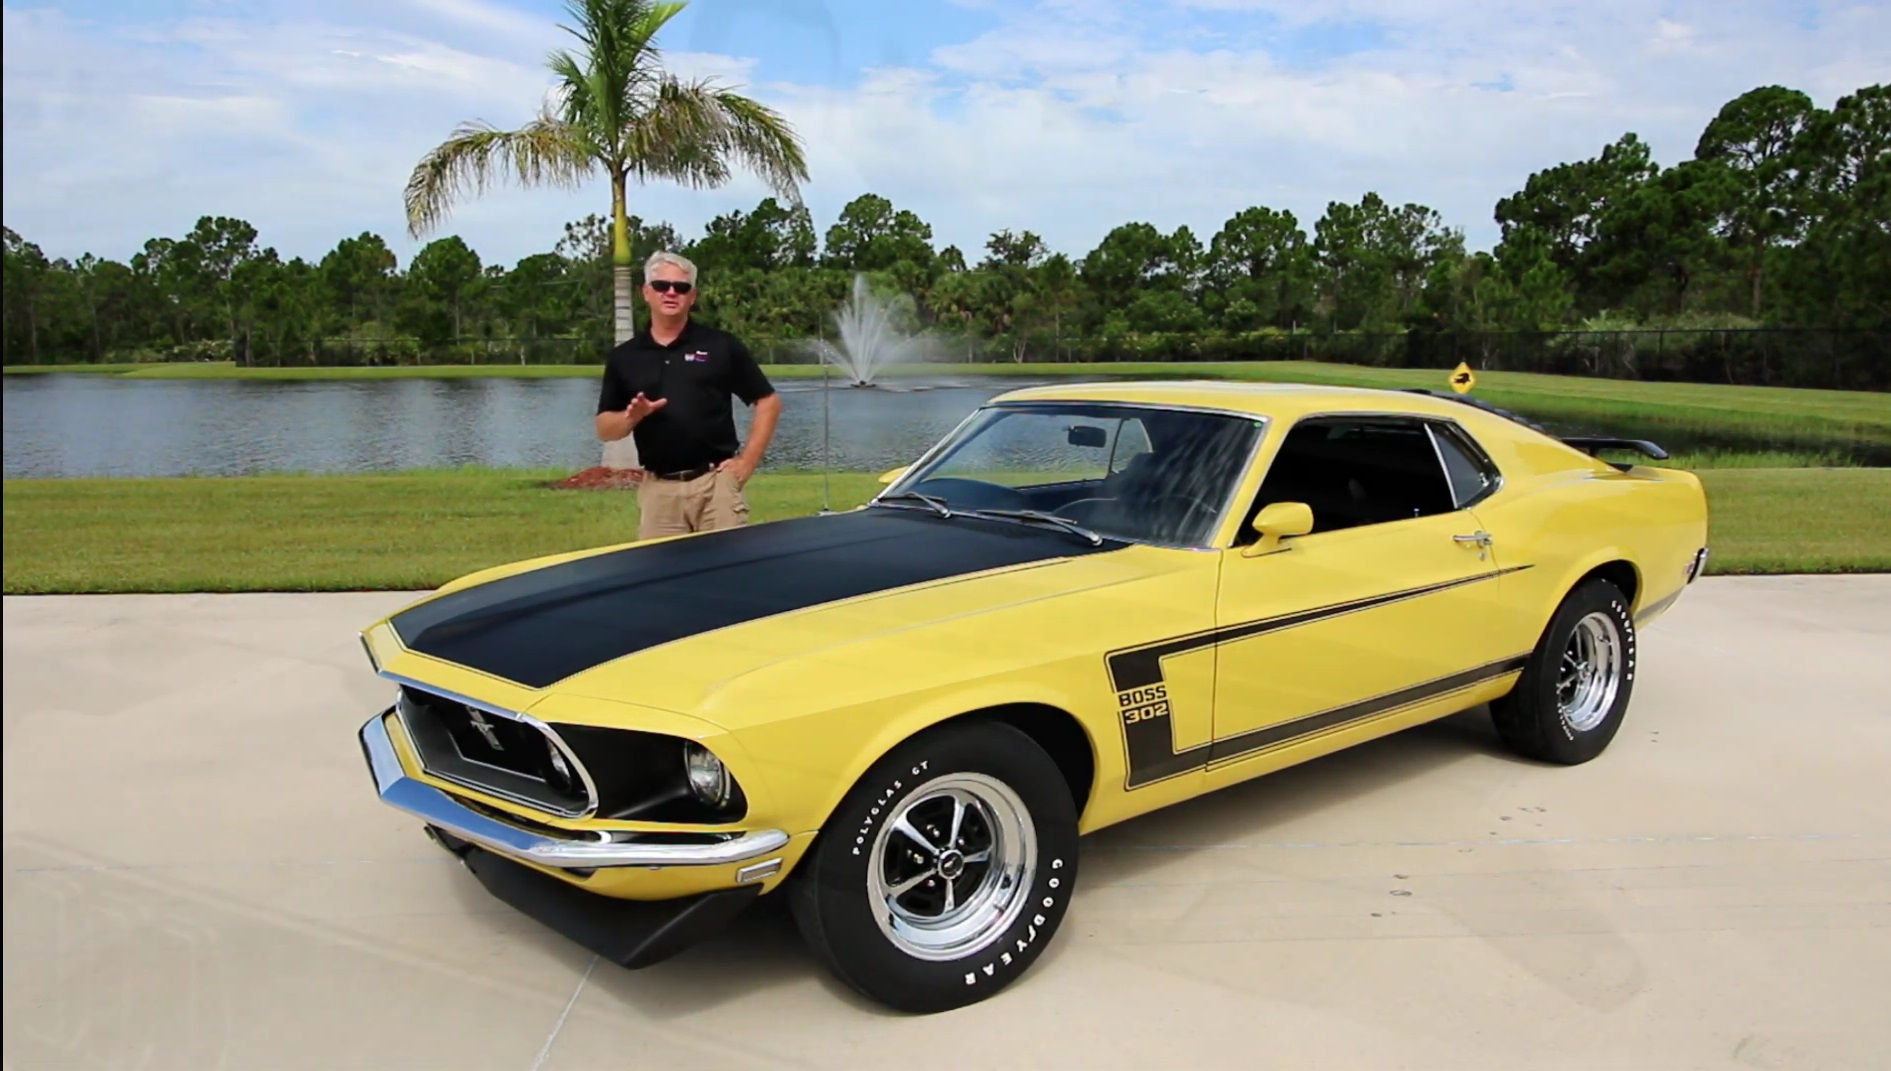 A Look At The 1969 Ford Mustang Boss 302's Quick History